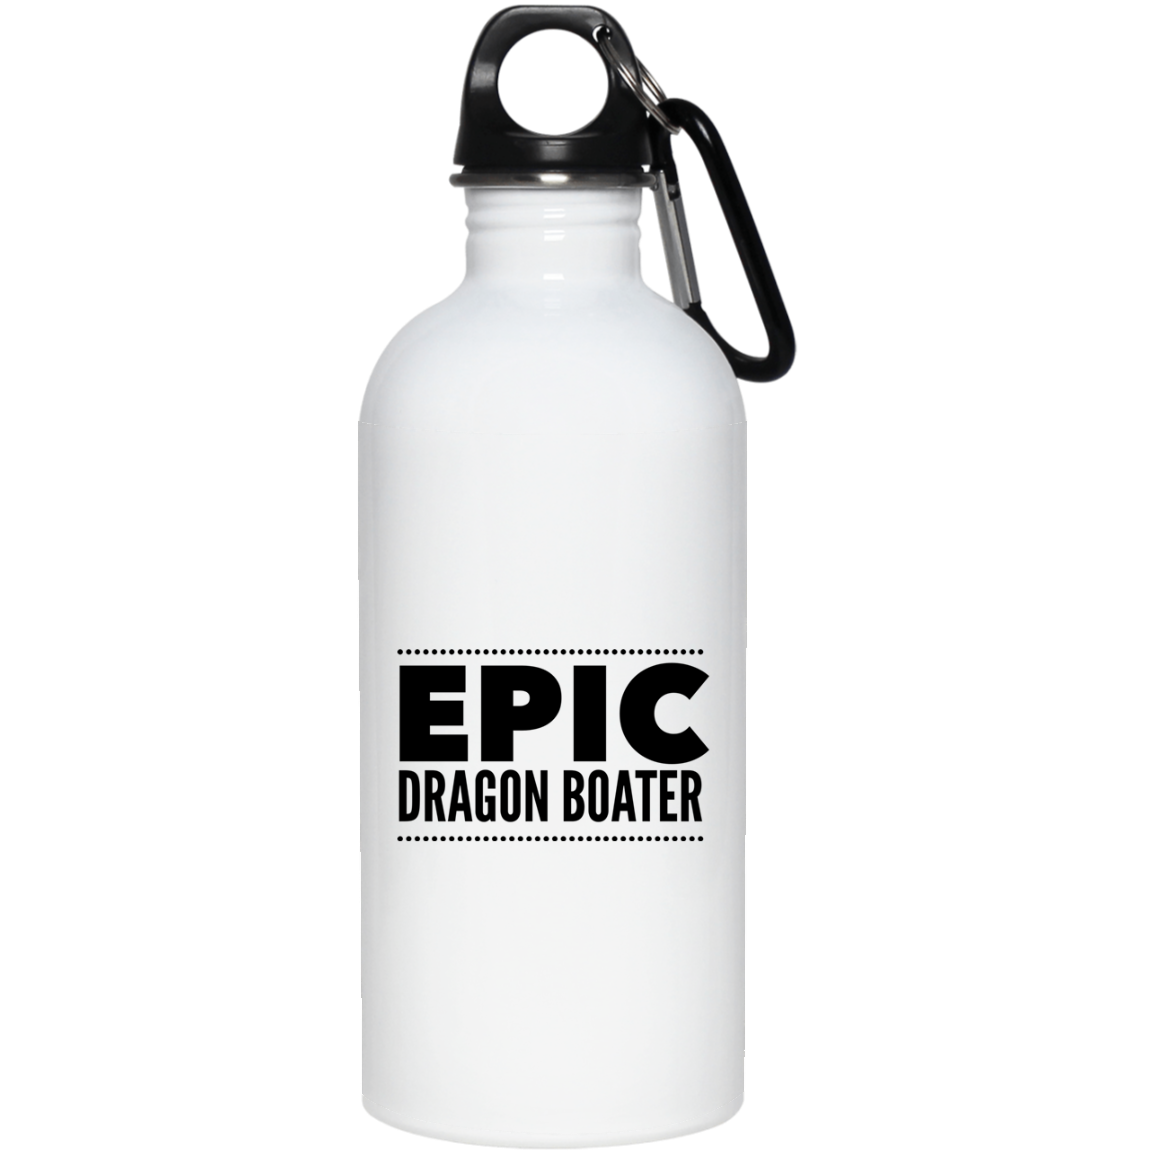 Epic Dragon Boater 20 oz. Stainless Steel Water Bottle